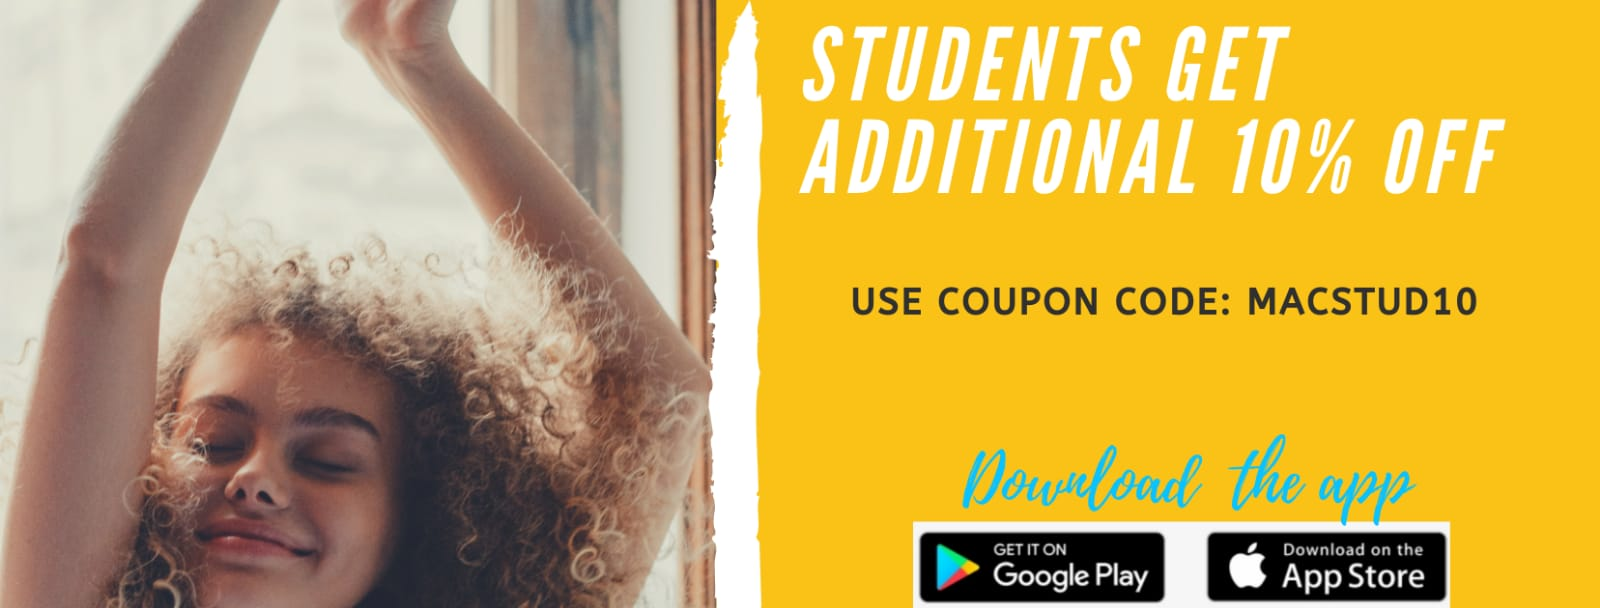 Students Get 10% OFF